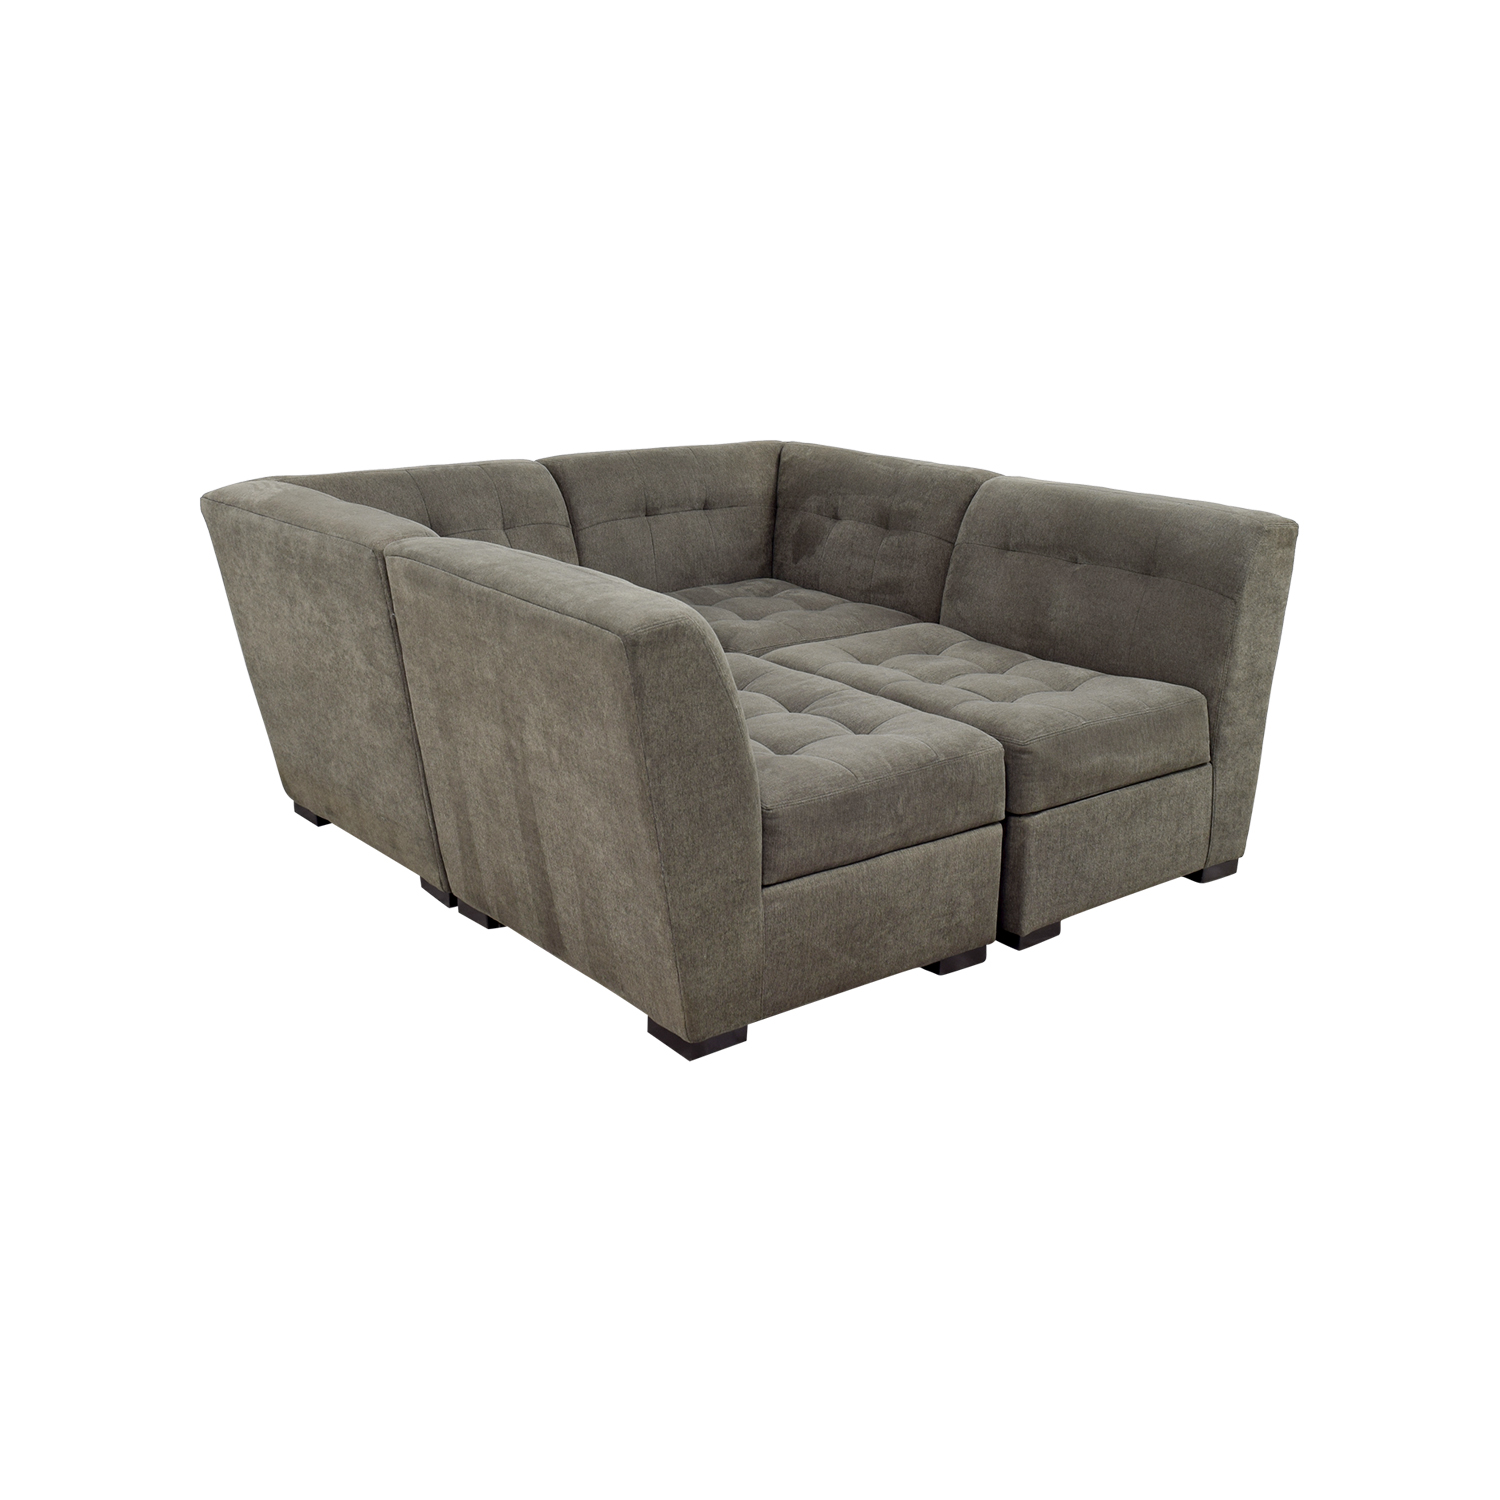 2nd hand sectional sofa slipcover for bed bath and beyond second convertible plus